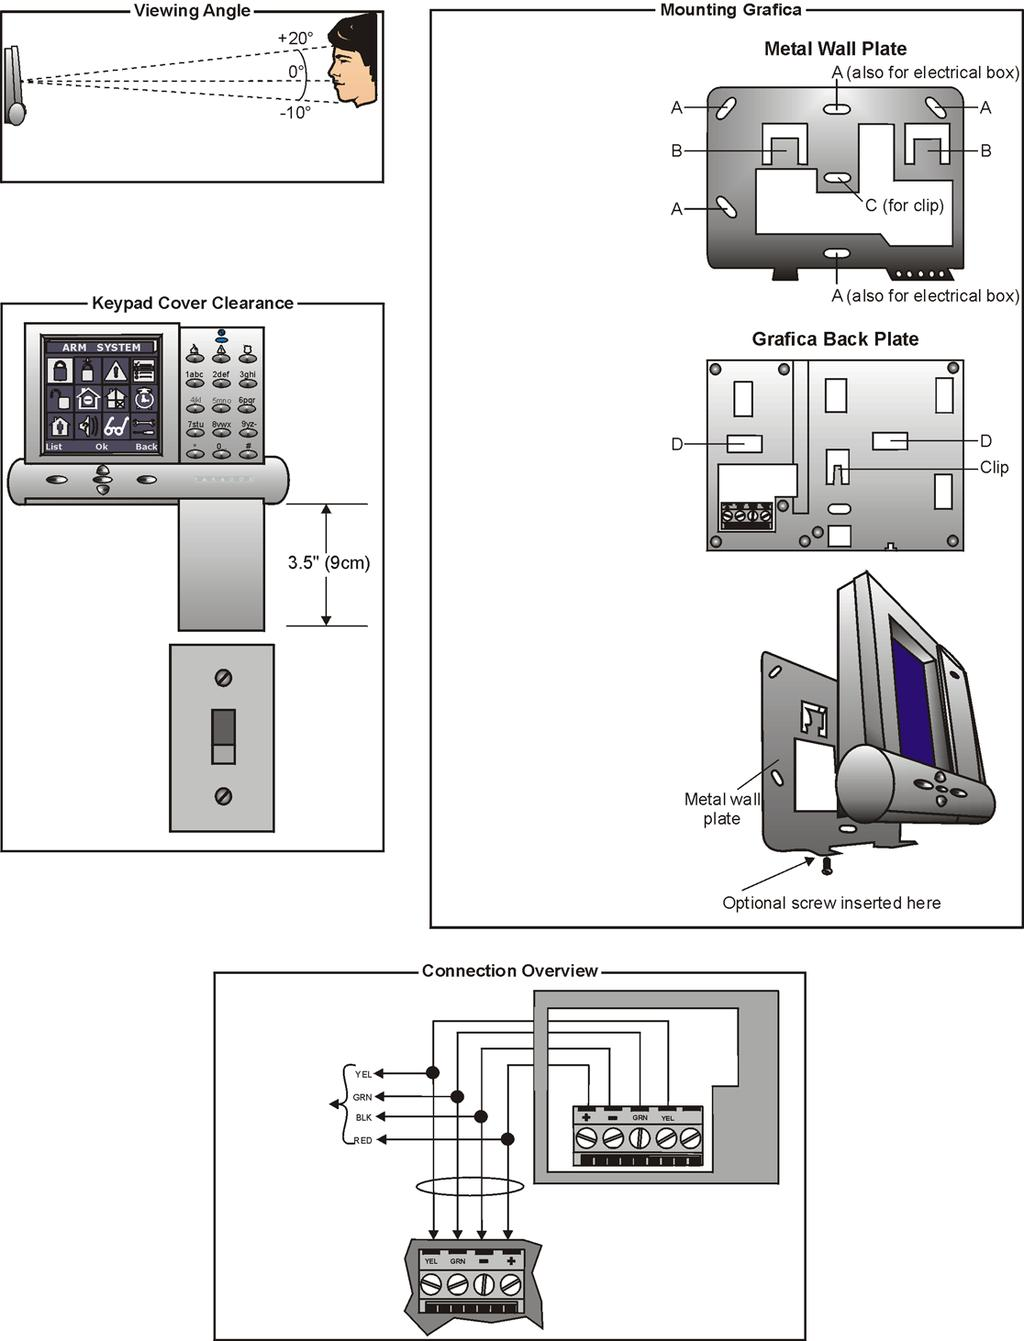 Modules Programming Guide Paradoxcom Pdf Block Diagram Sbd Power Substation Control Ticom Grafica Graphic Lcd Keypad Module Dne K07 Please Note The